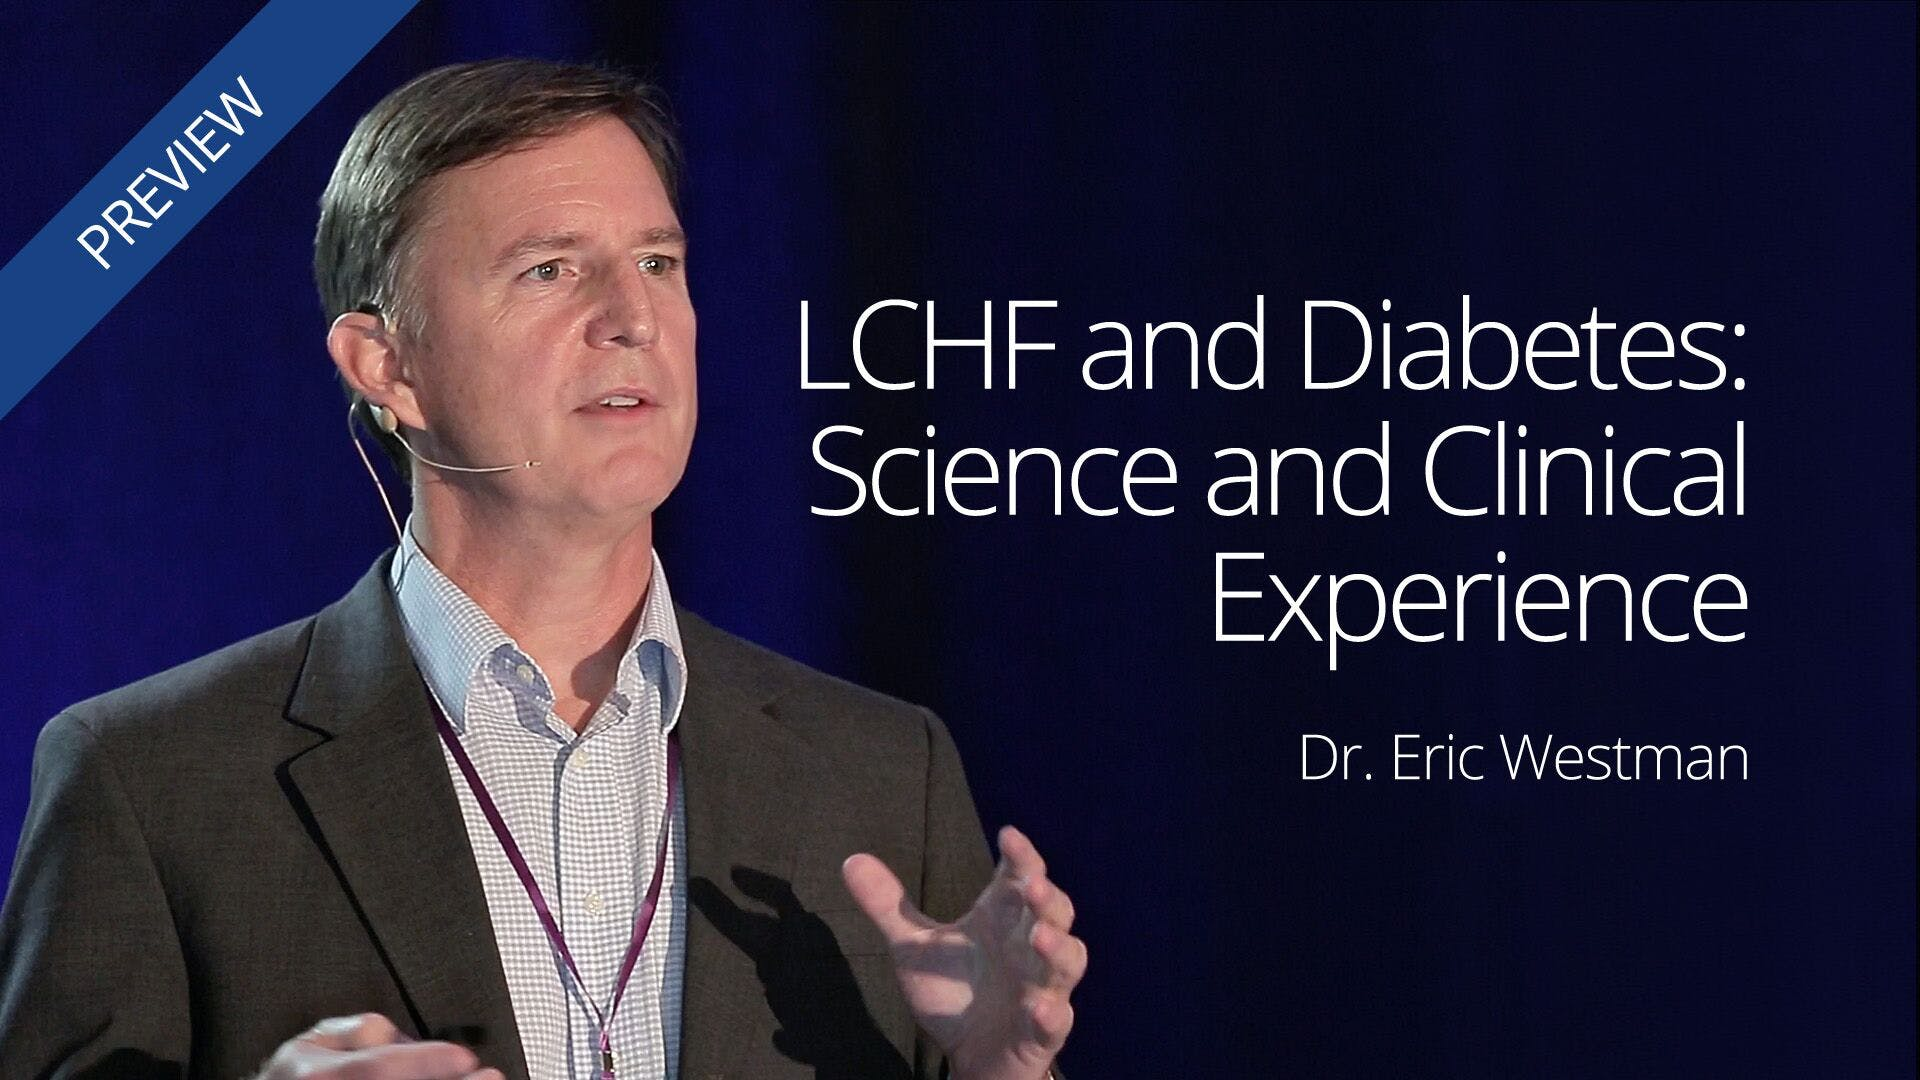 LCHF and Diabetes: Science and Clinical Experience